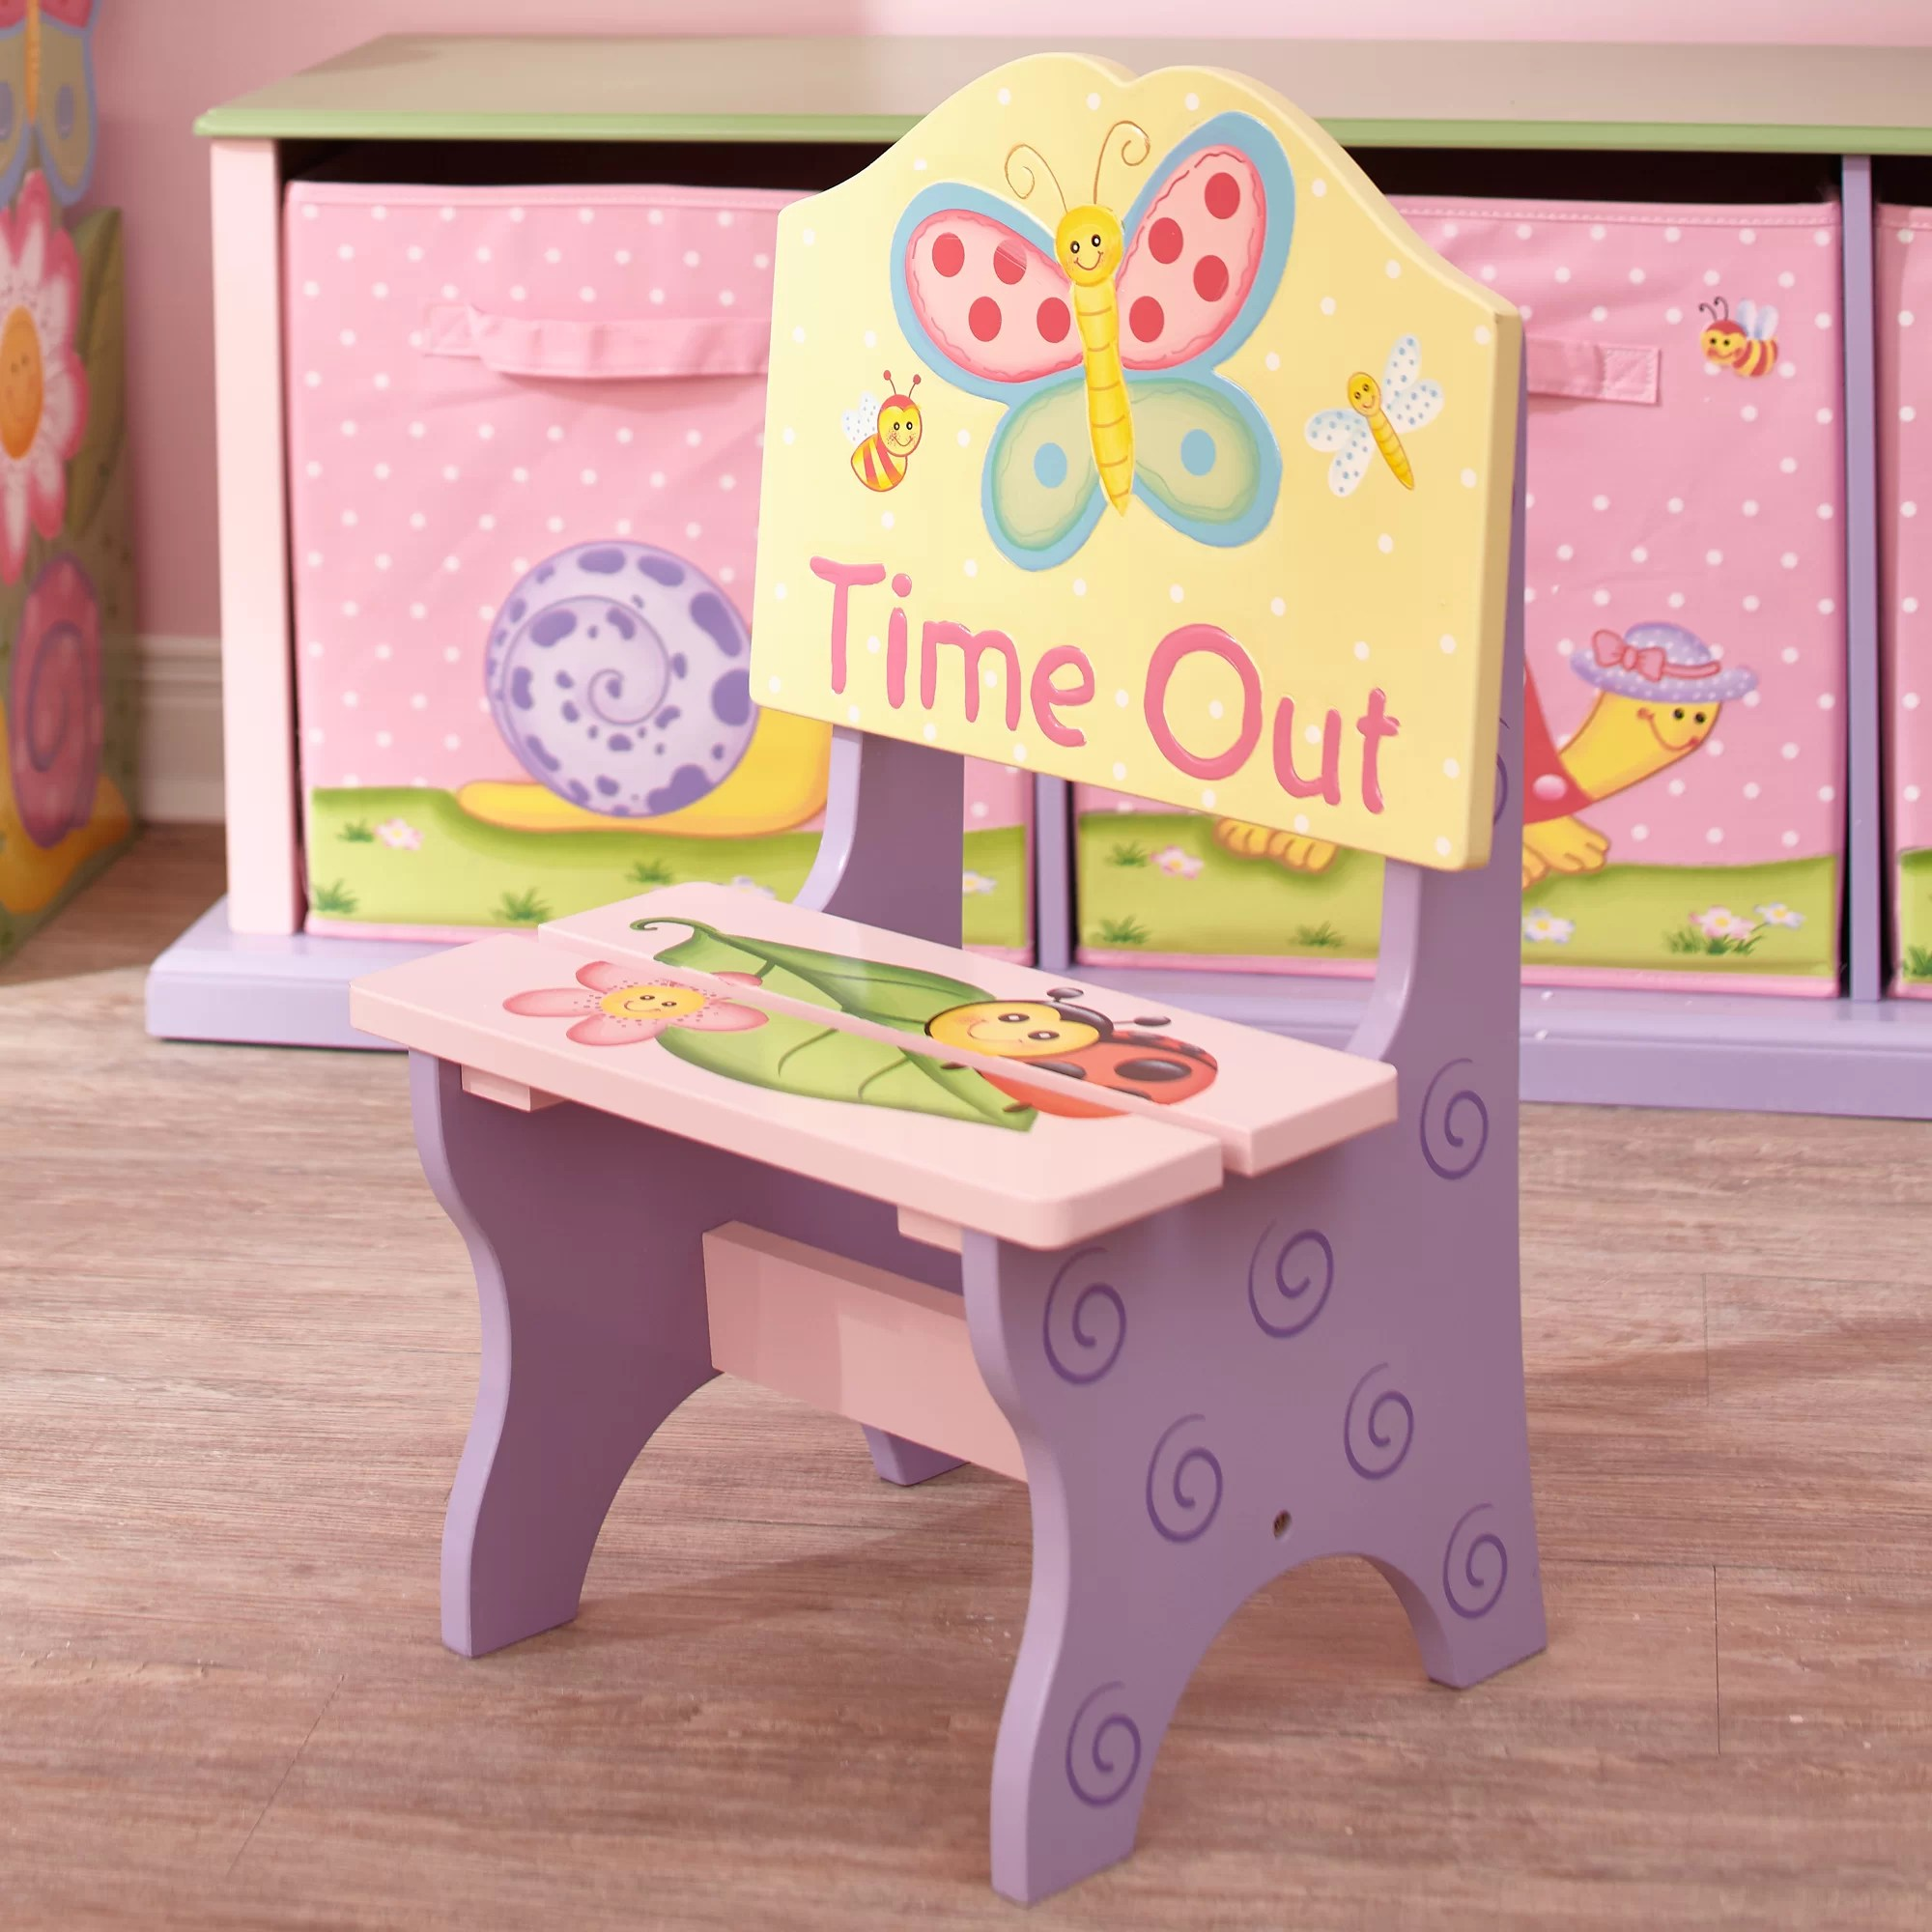 kids time out chair barber parts fantasy fields magic garden desk and reviews